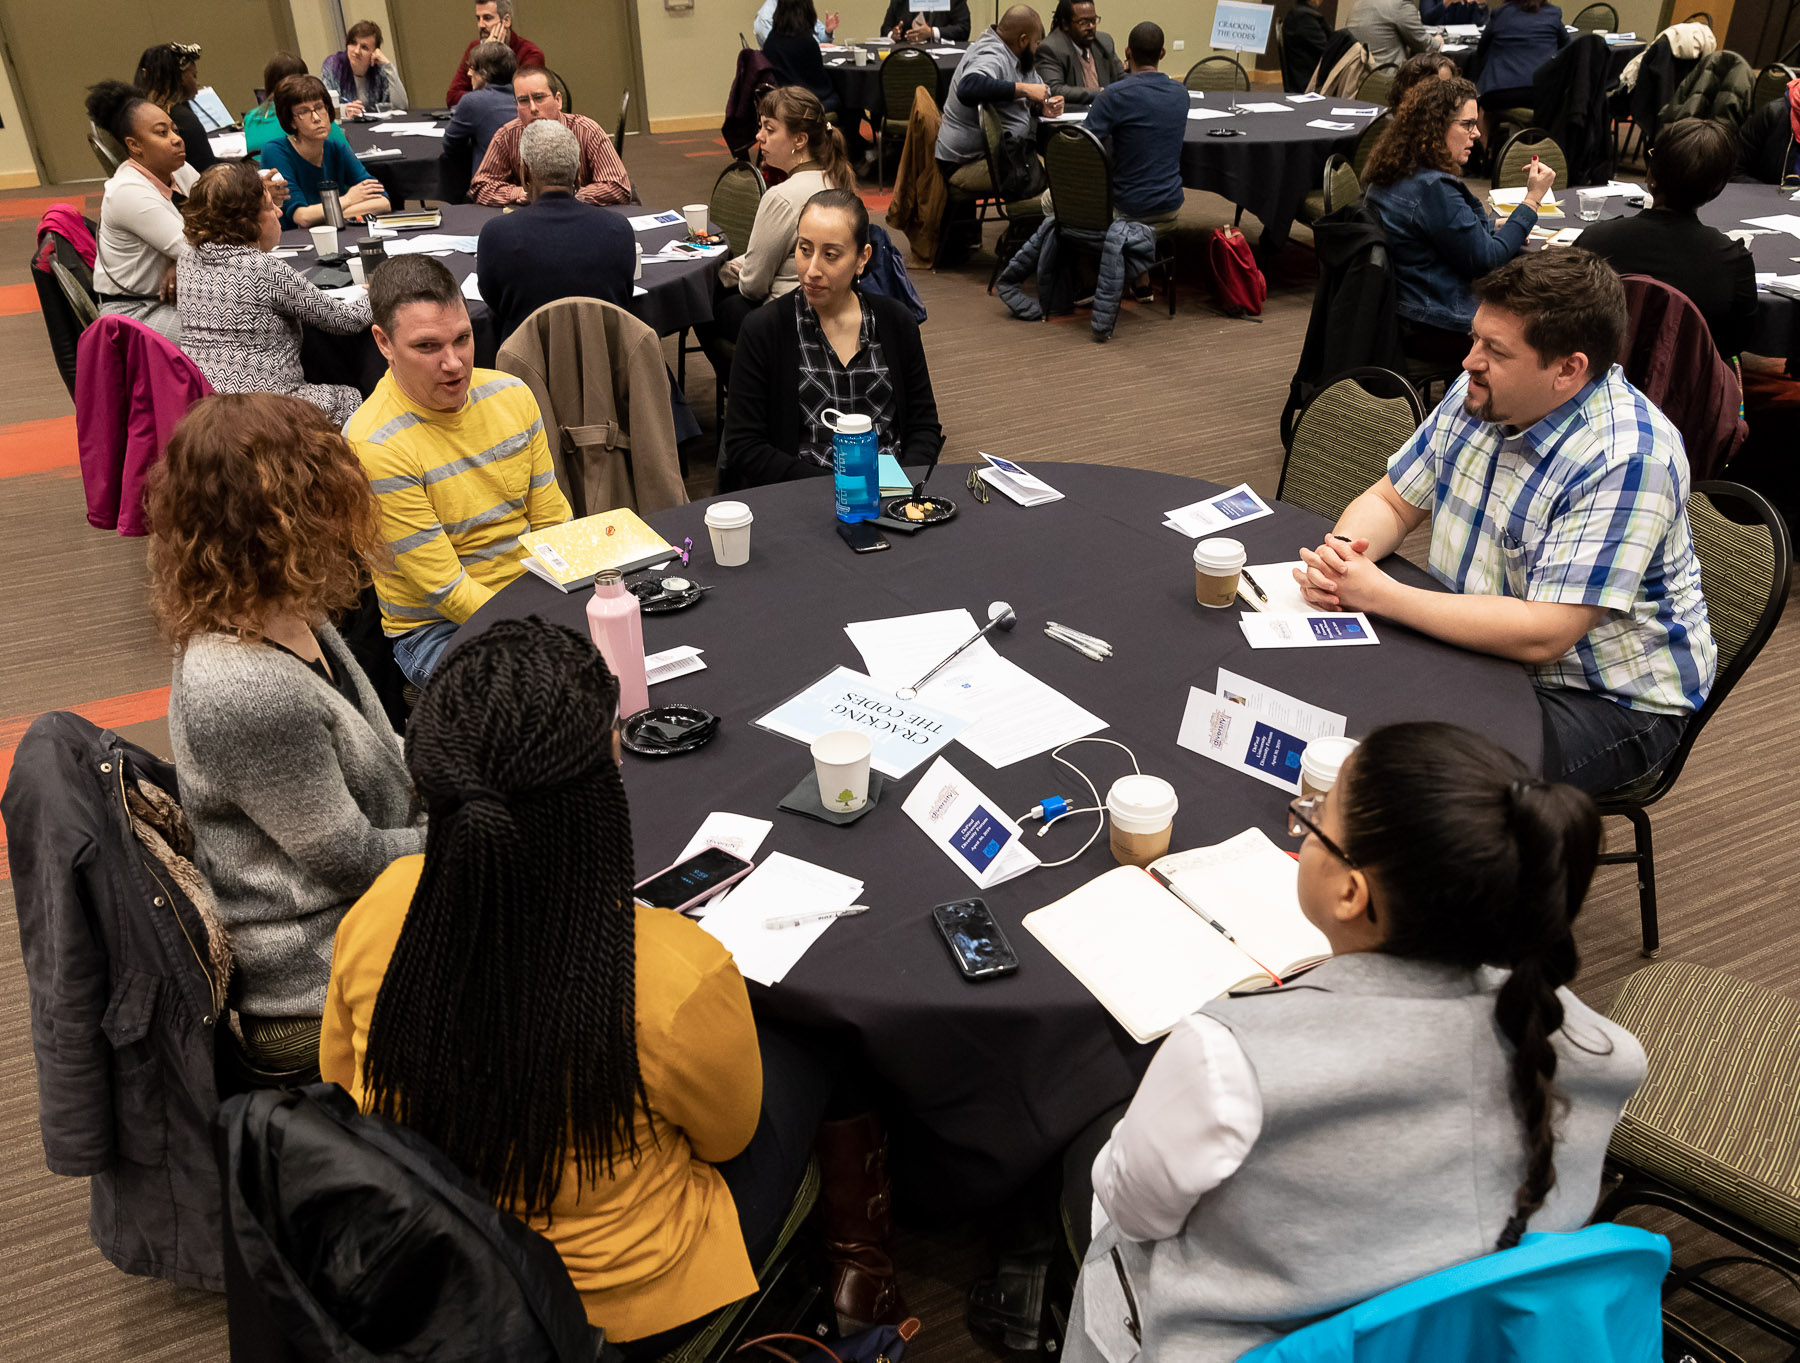 Groups of faculty, staff and students took time to talk about diversity topics during the event in the Lincoln Park Student Center. (DePaul University/Jeff Carrion)​​